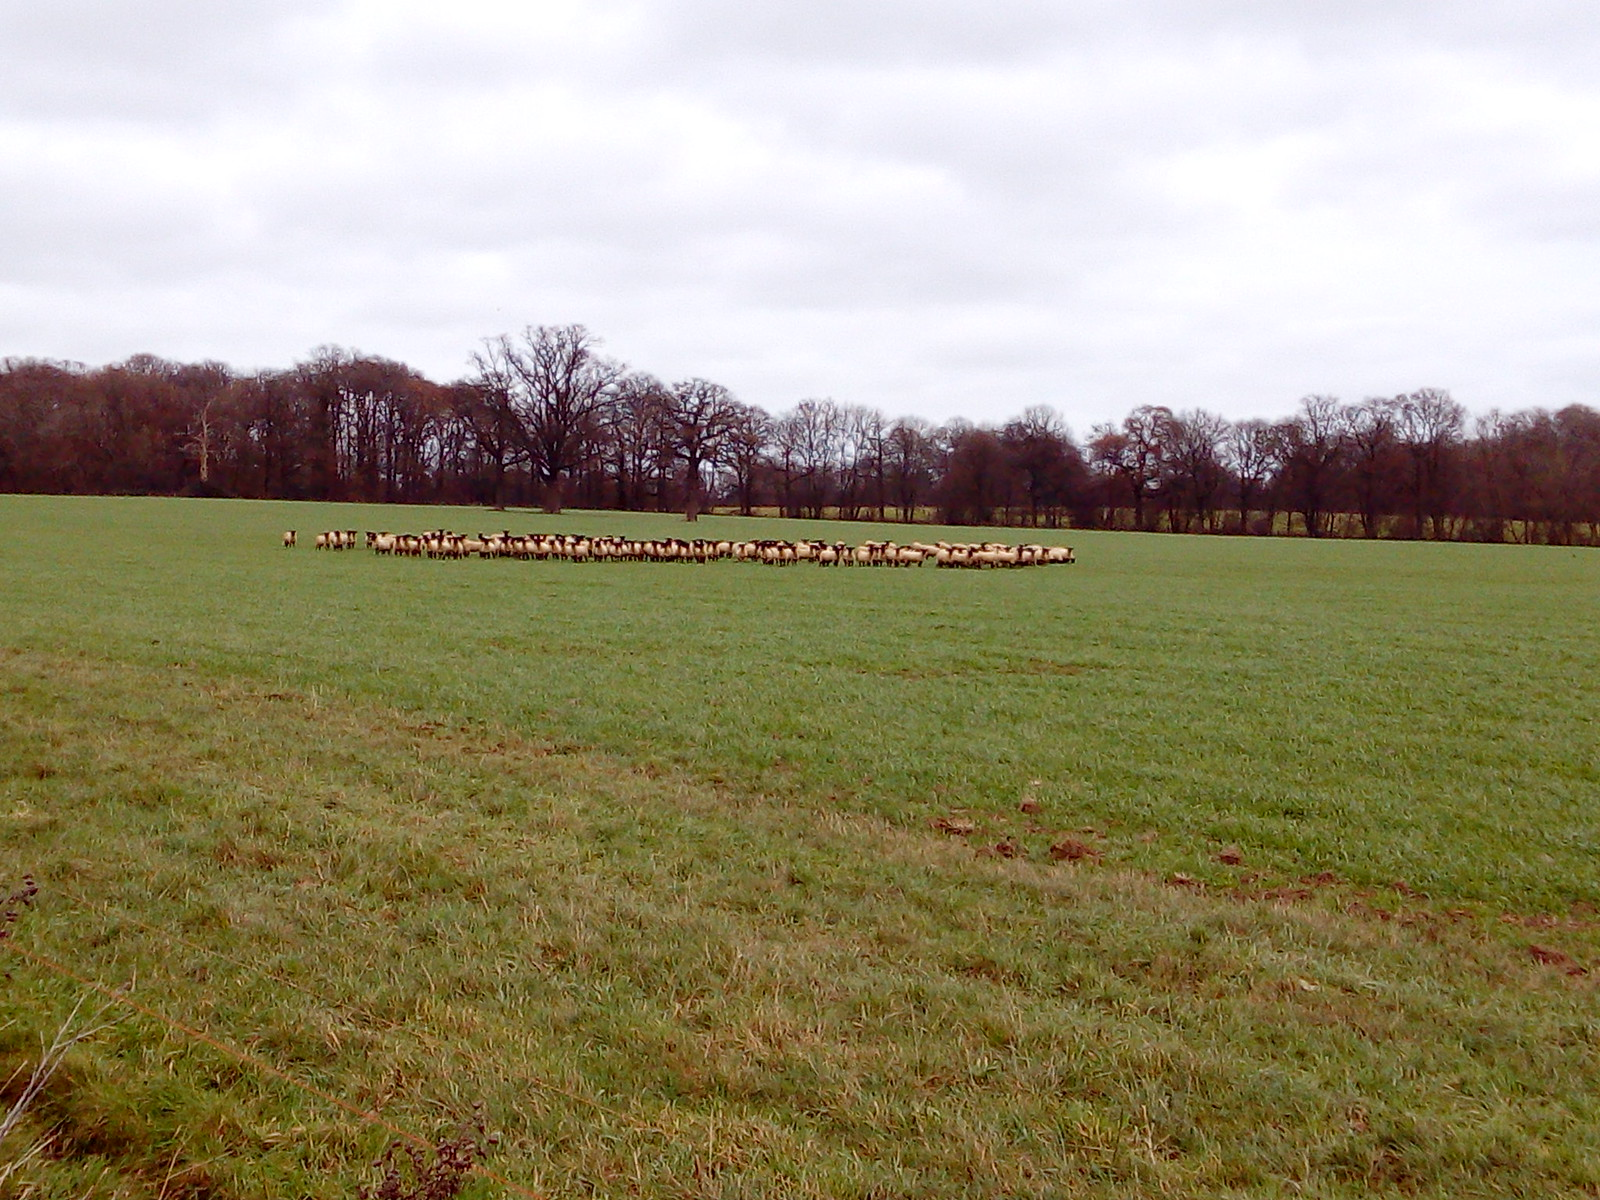 Clustered Sheep Unusal sheep formation - Leigh to Sevenoaks